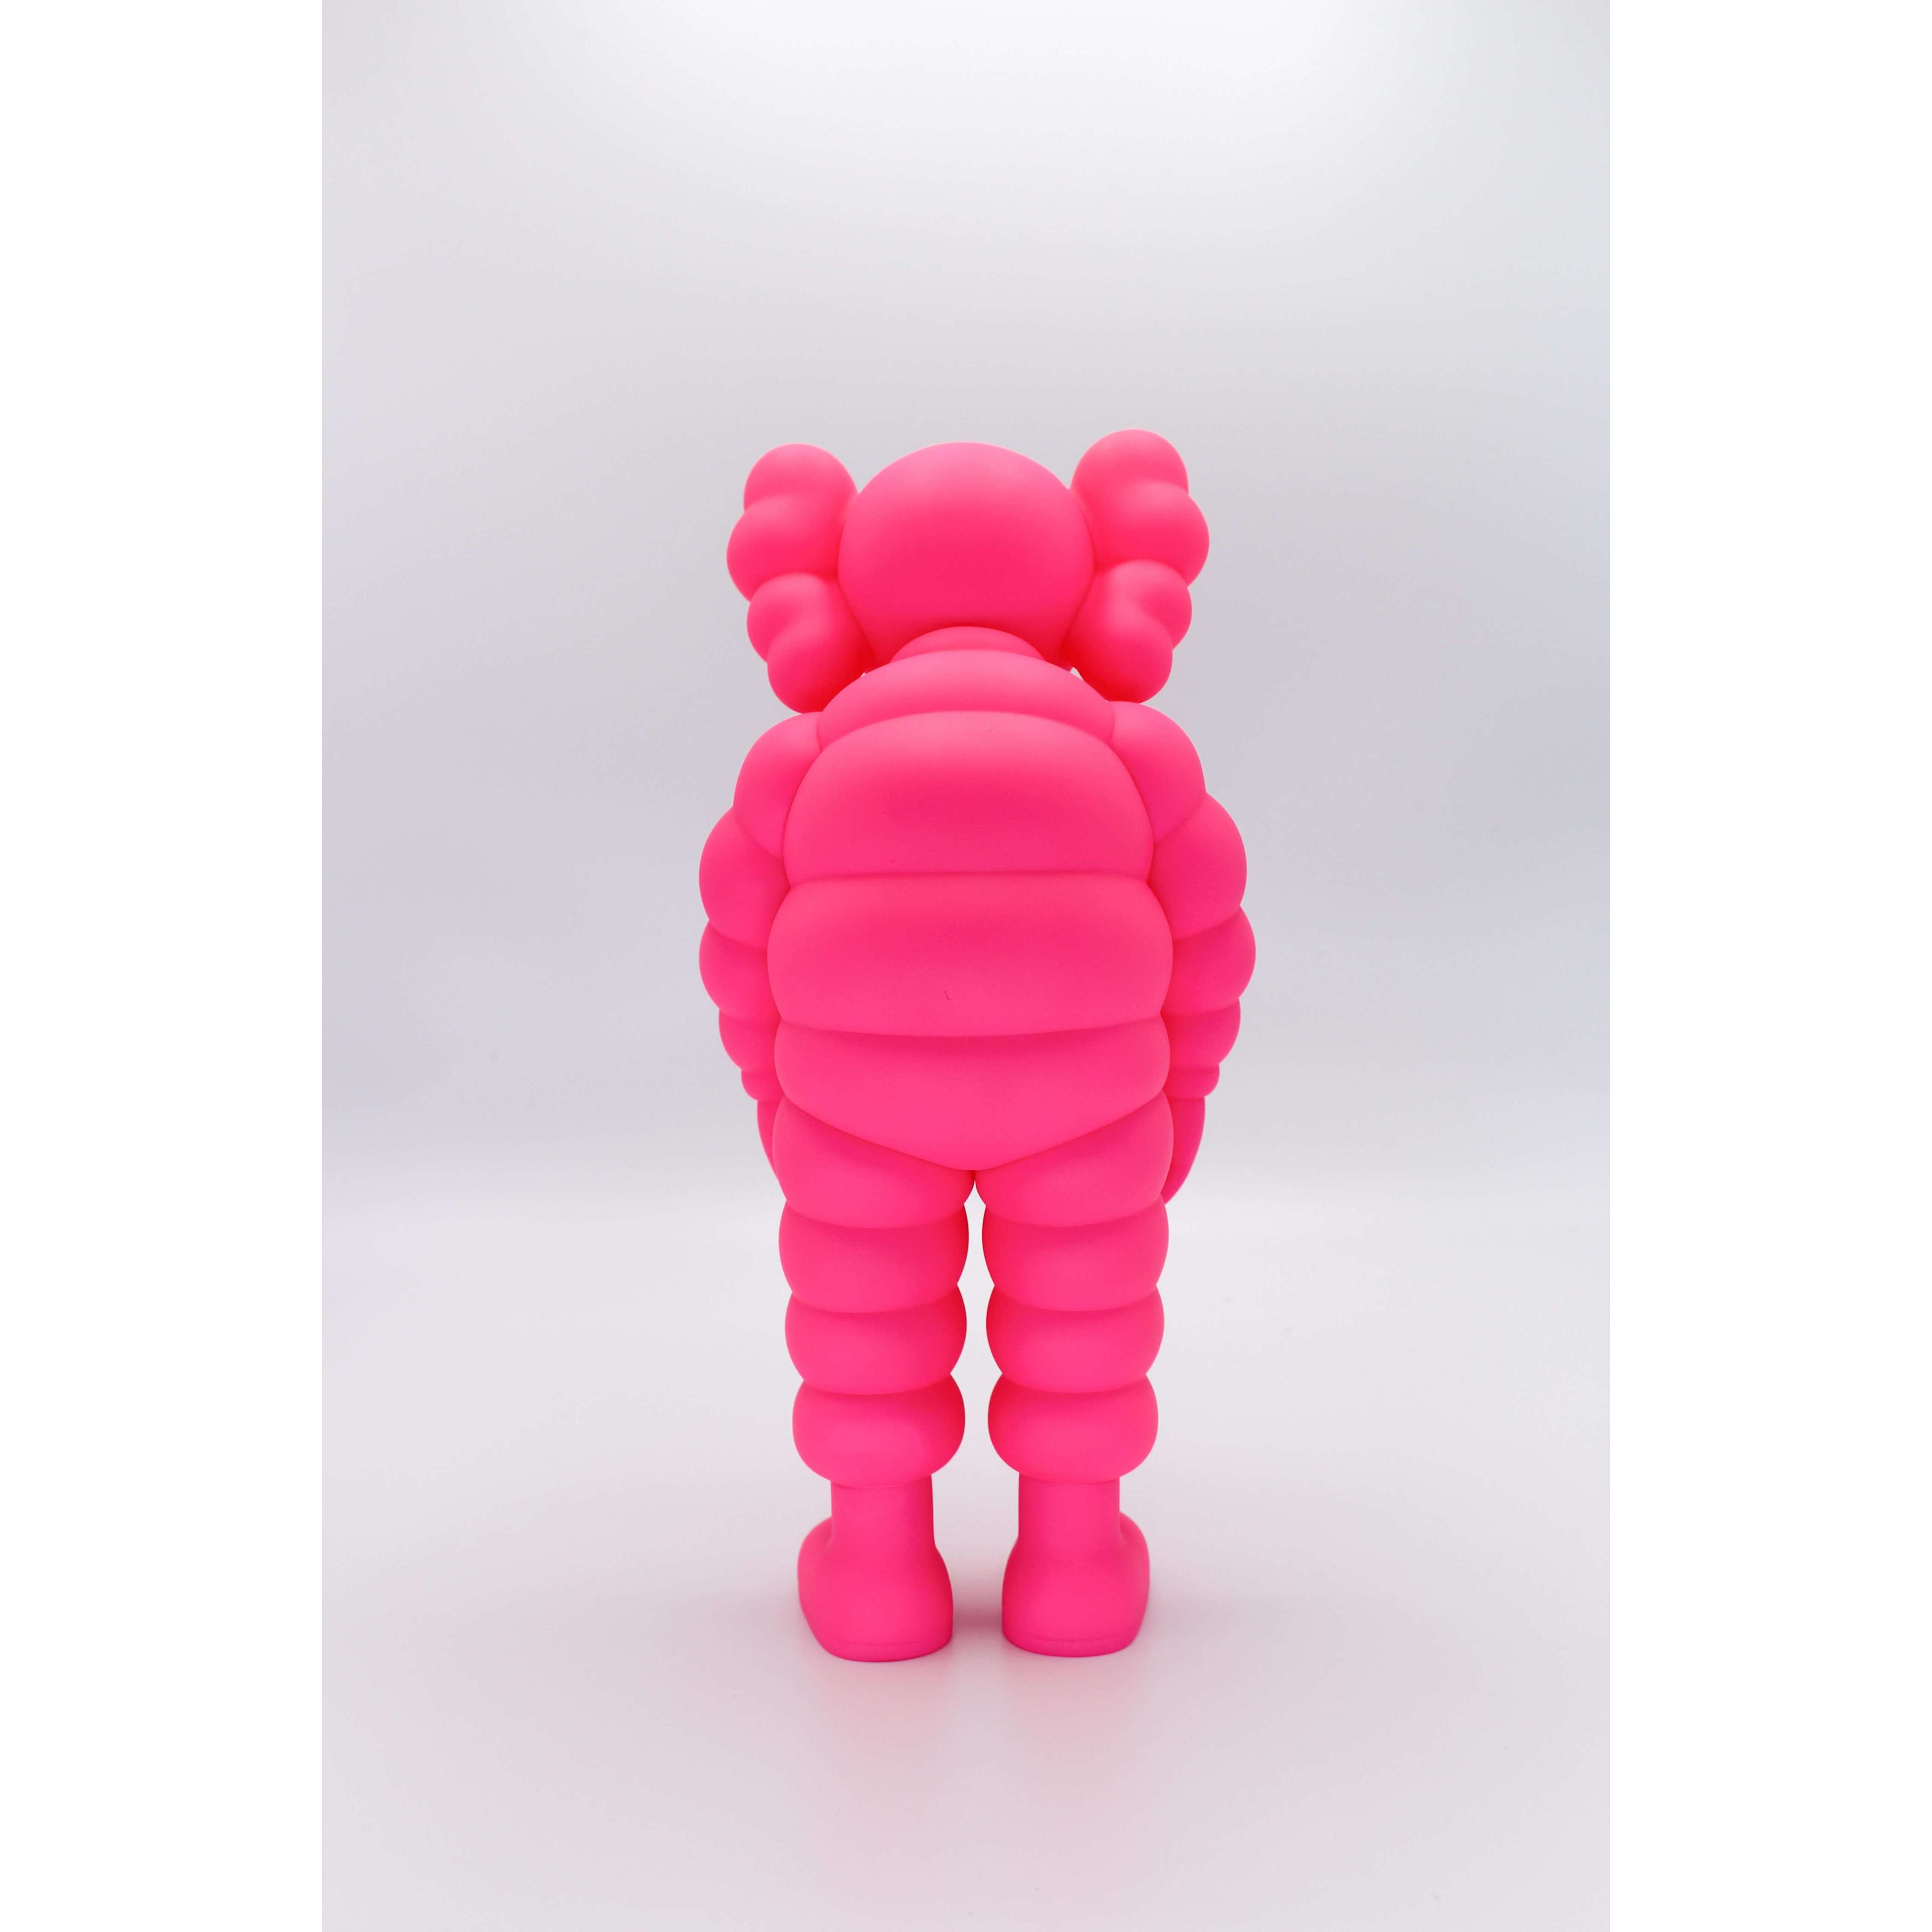 KAWS, What Party - Chum (Pink), 2020 | Lougher Contemporary